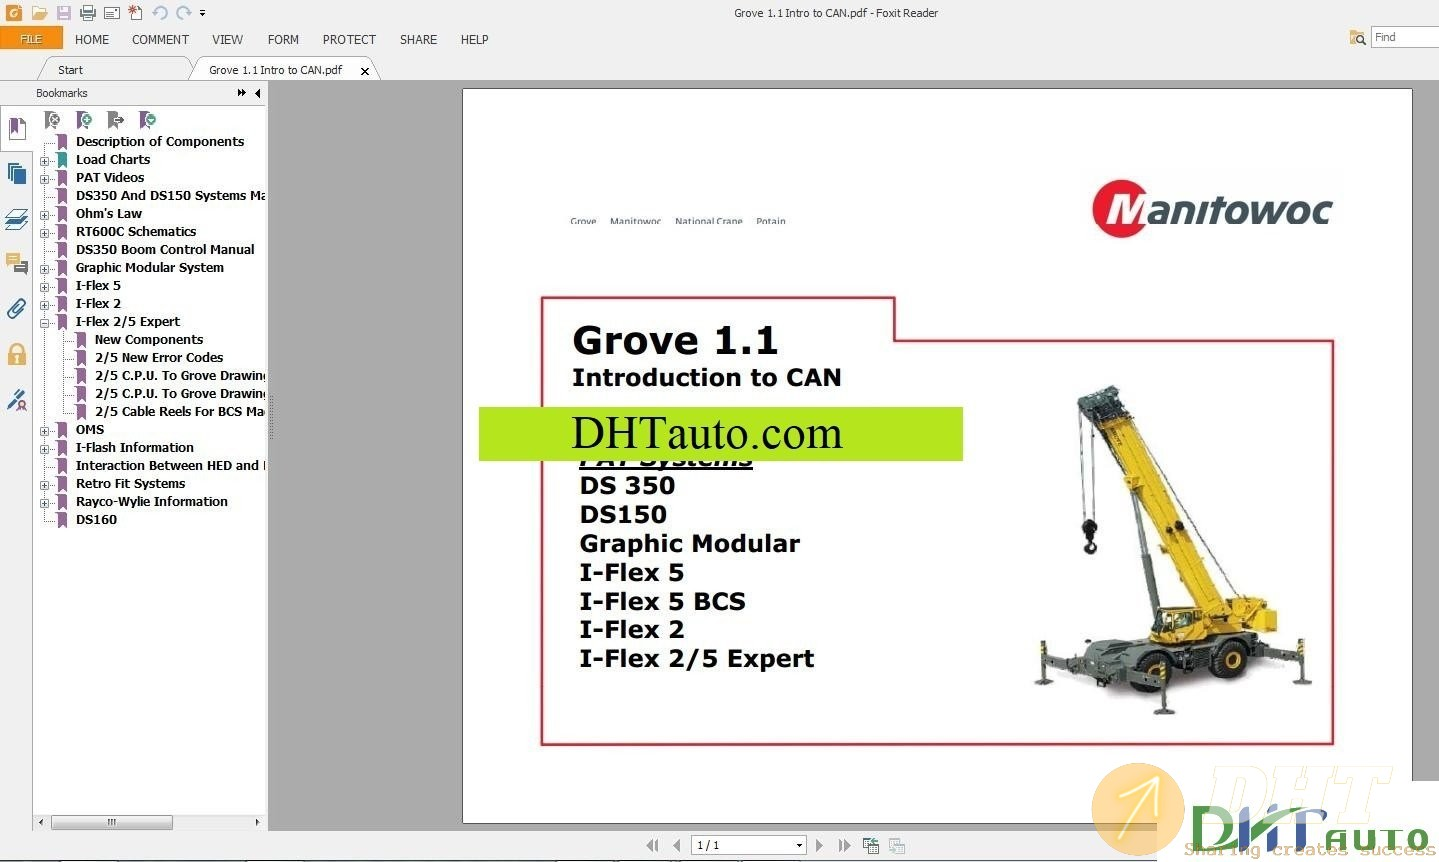 Manitowoc-Grove-Full-Set-Manual-4.jpg